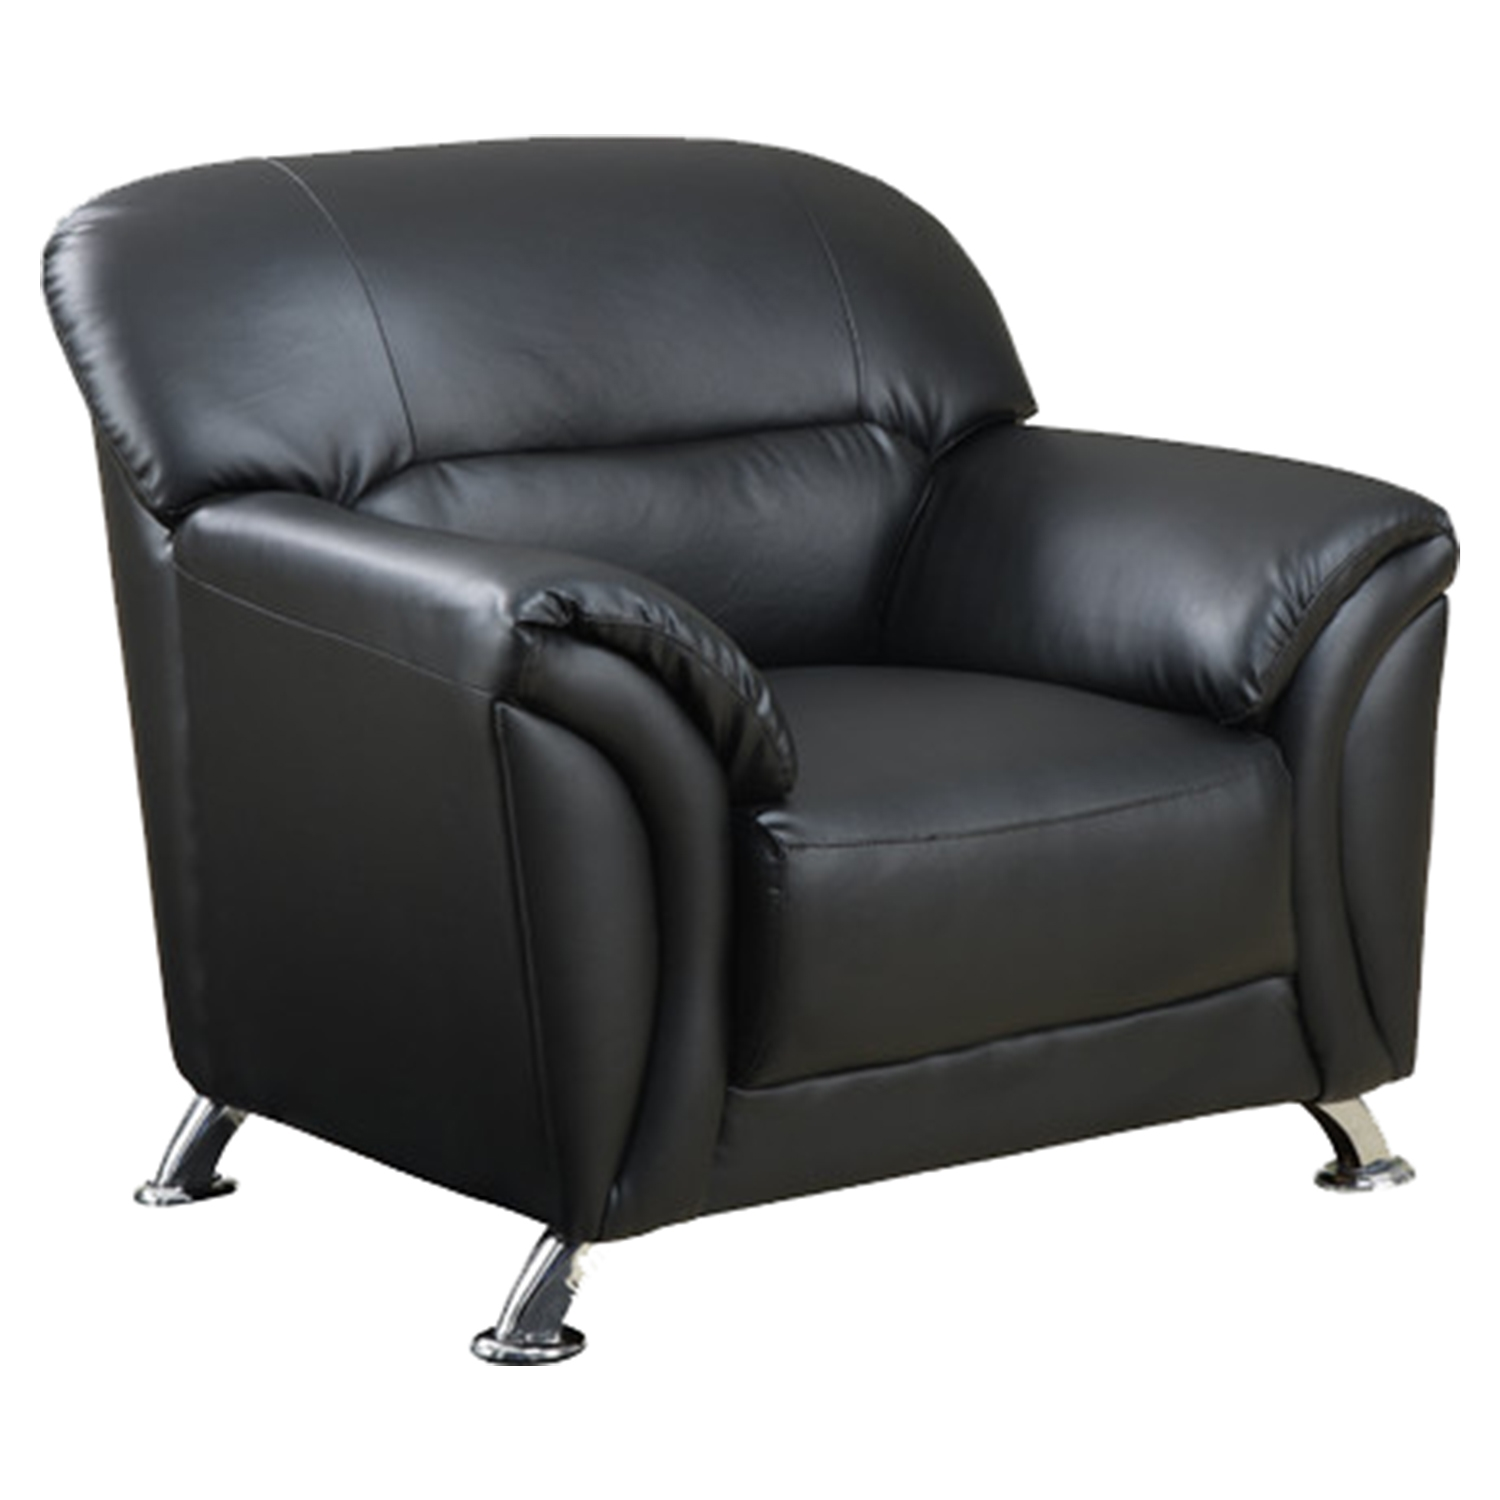 Maxwell Chair - Black Leather Look